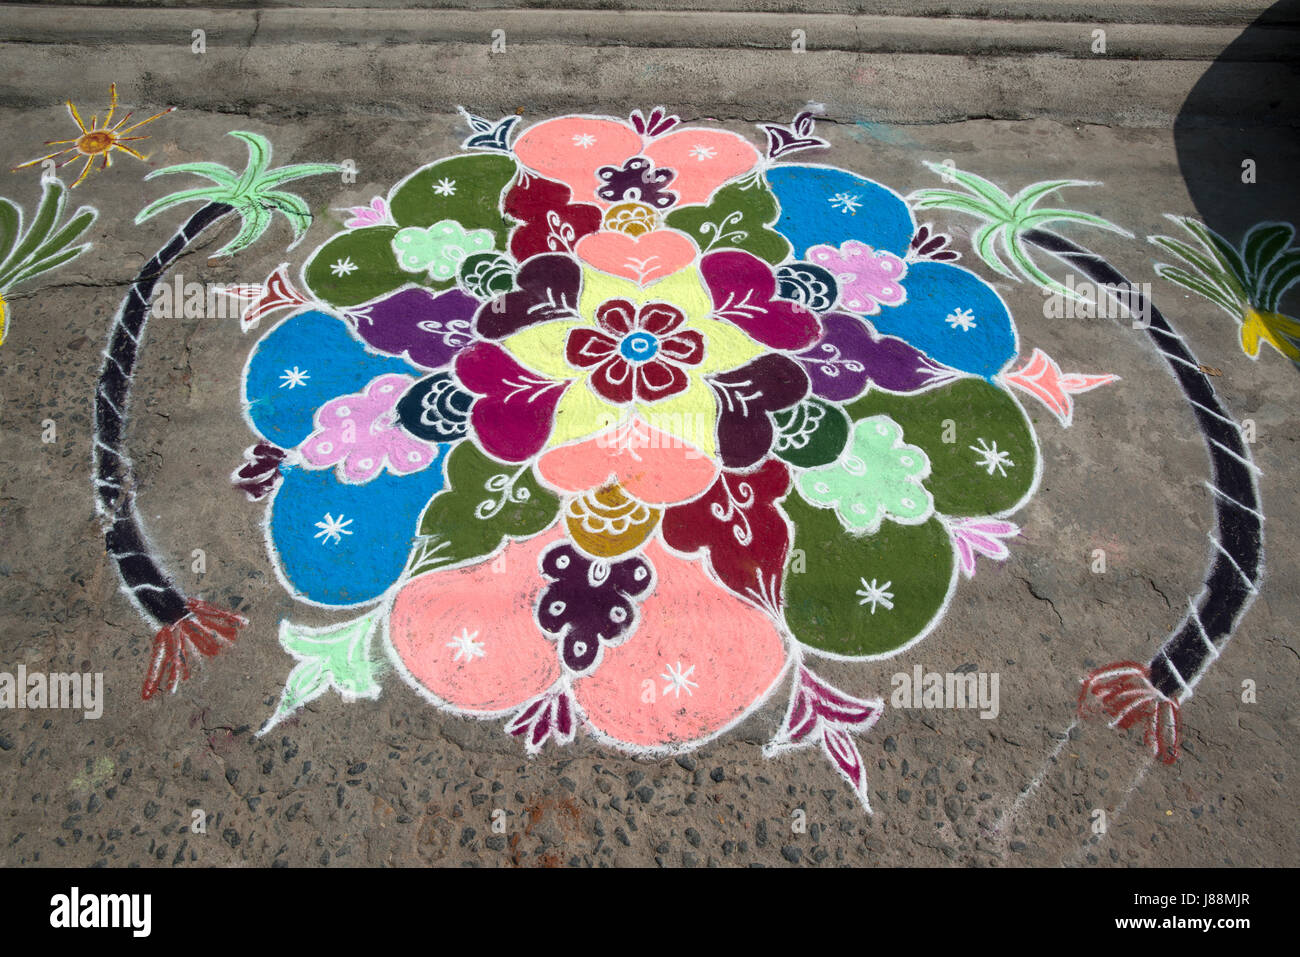 A coloured chalk drawing celebrating the Hindu festival of